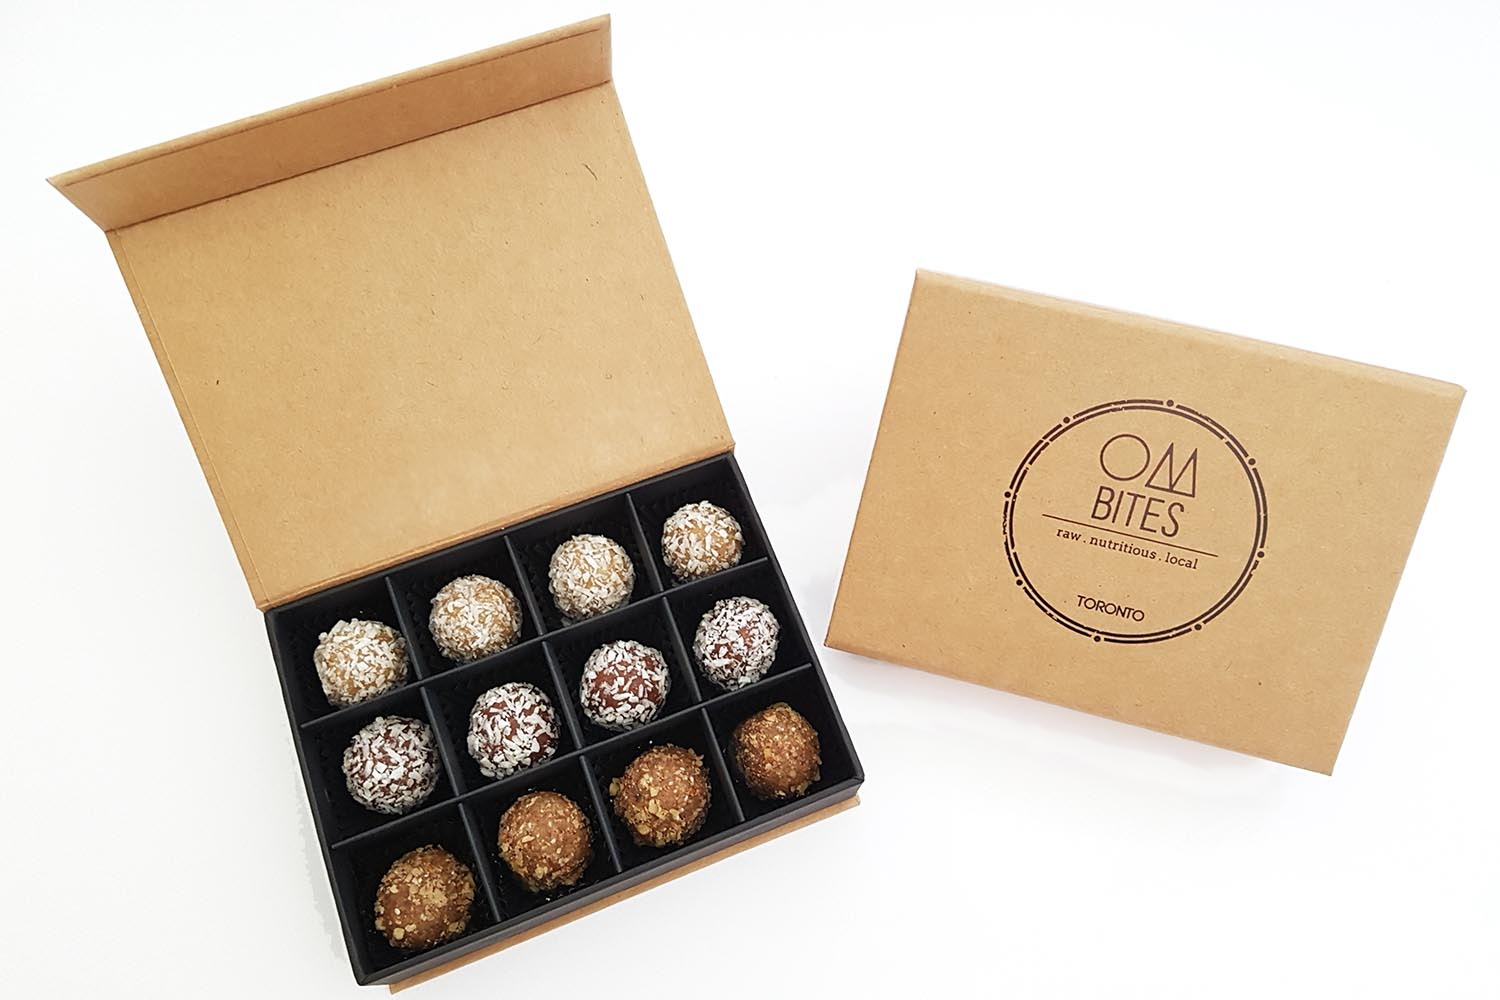 healthy treat unique gift idea energy balls Corporate gift to employees or clients